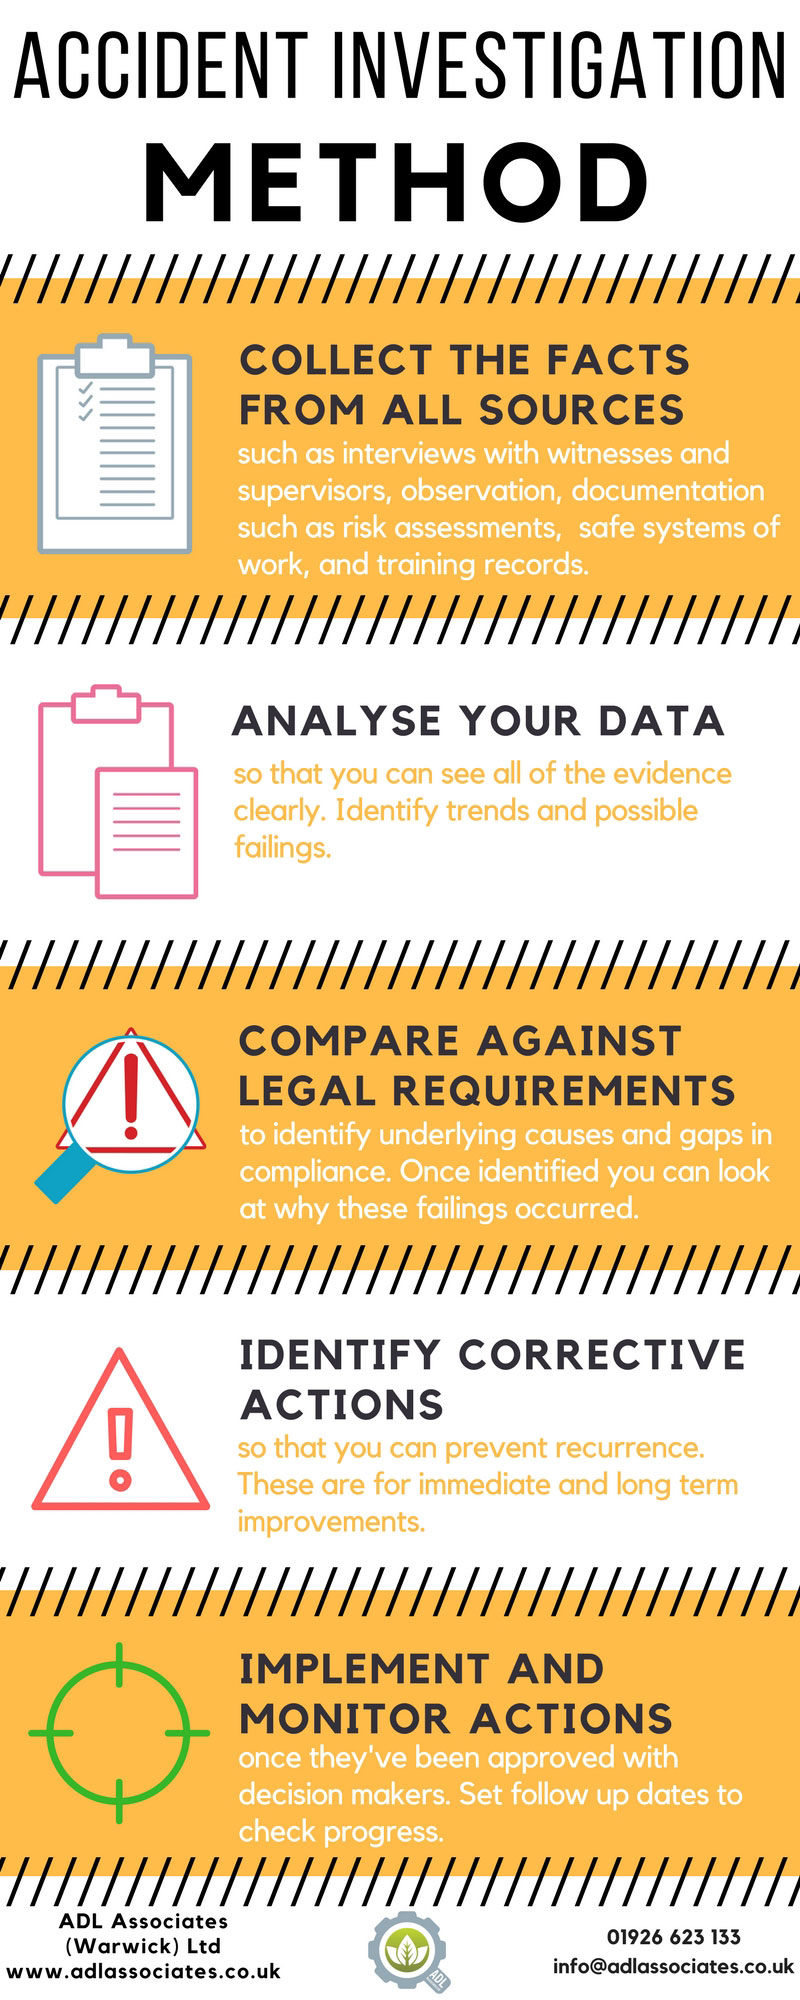 incident management infographic: the method for investigating accidents